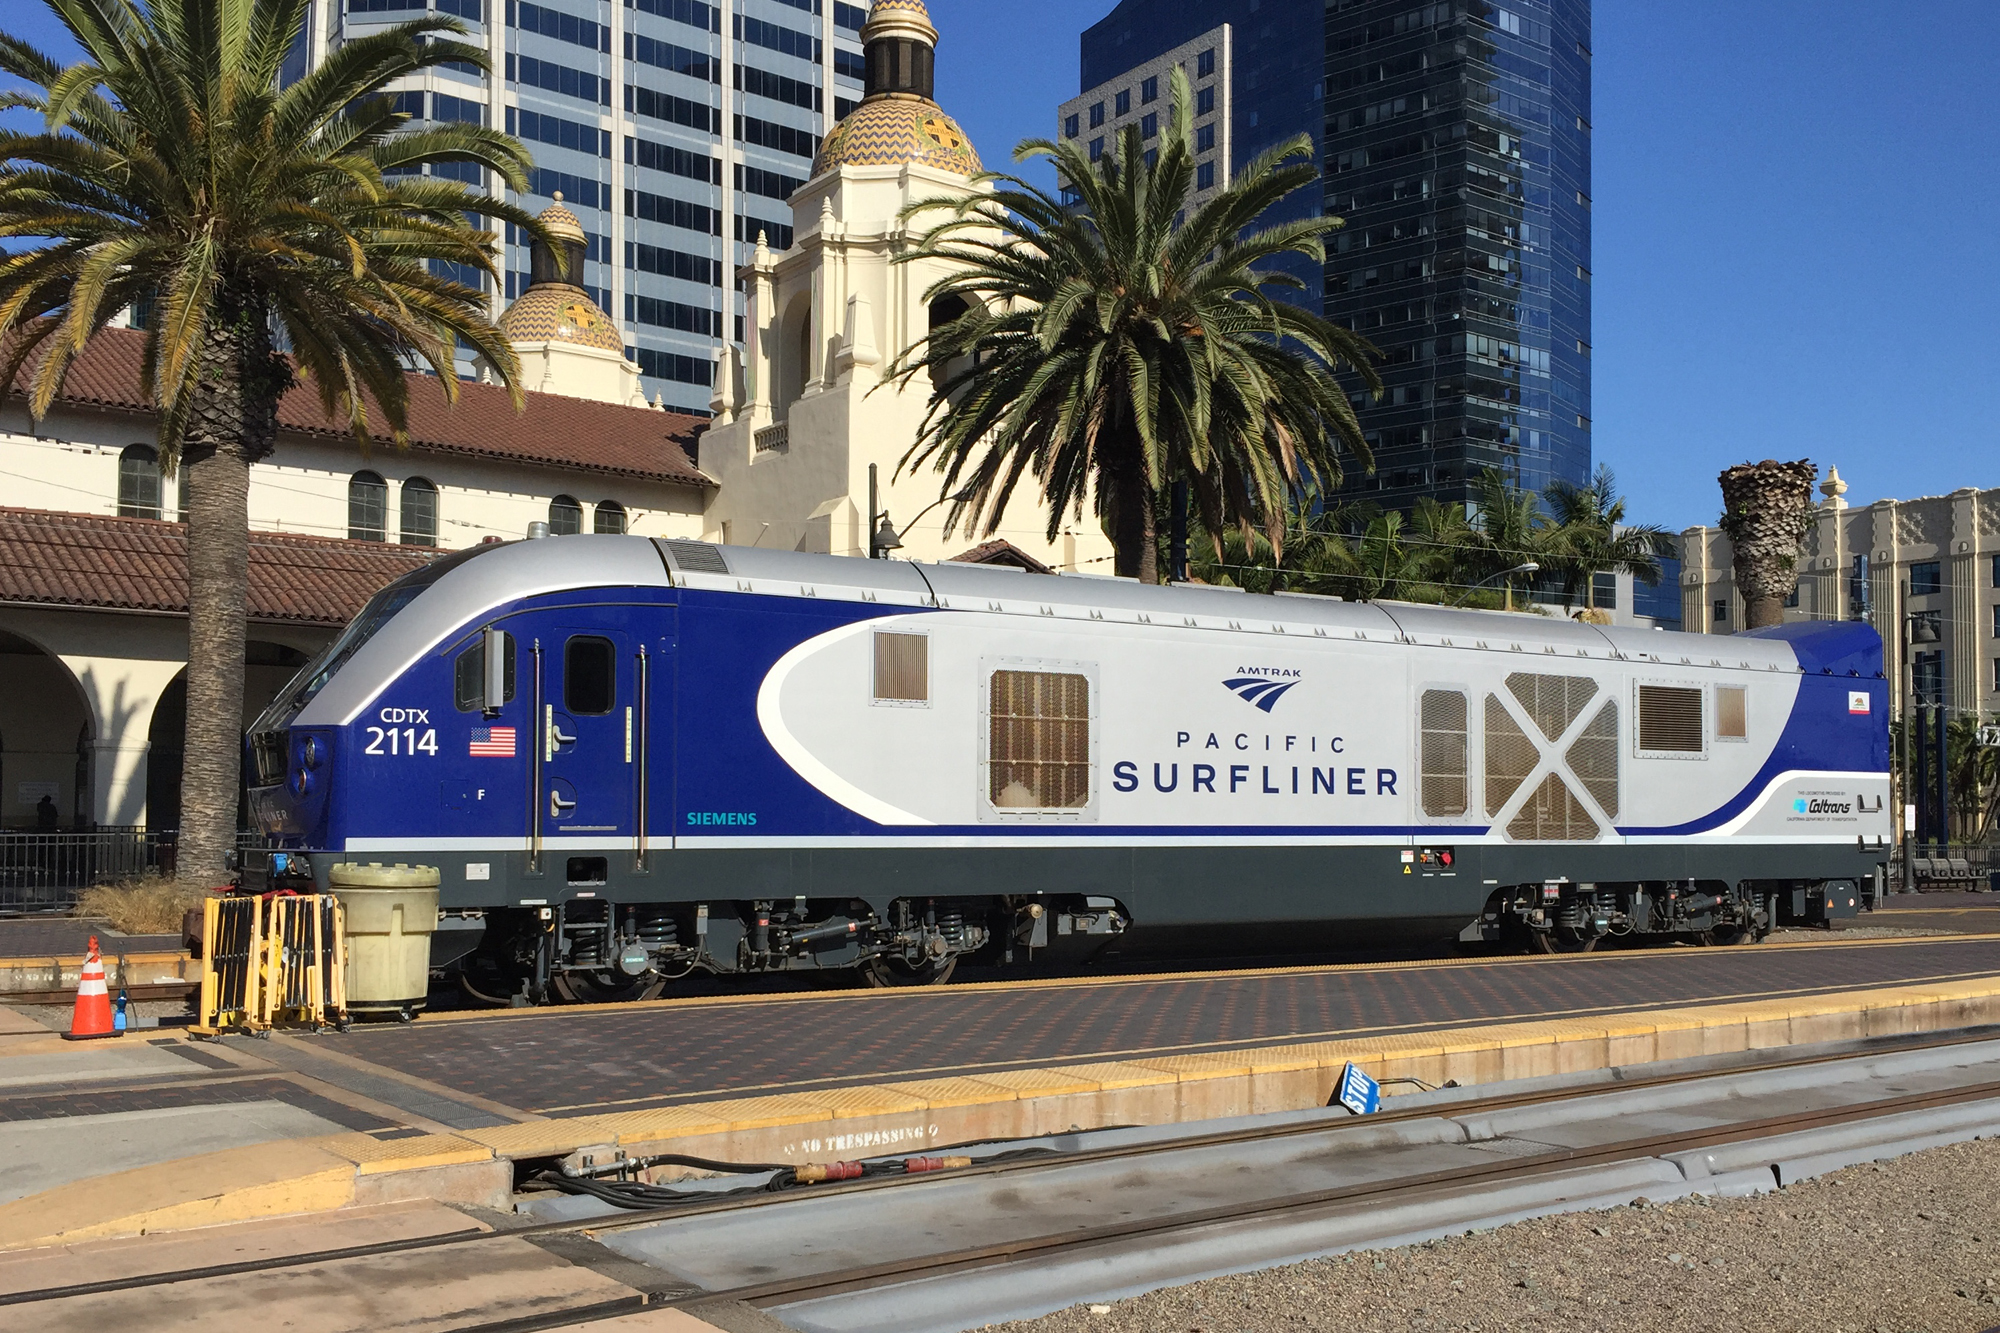 Pacific Surfliner at the Santa Fe train station at downtown San Diego.